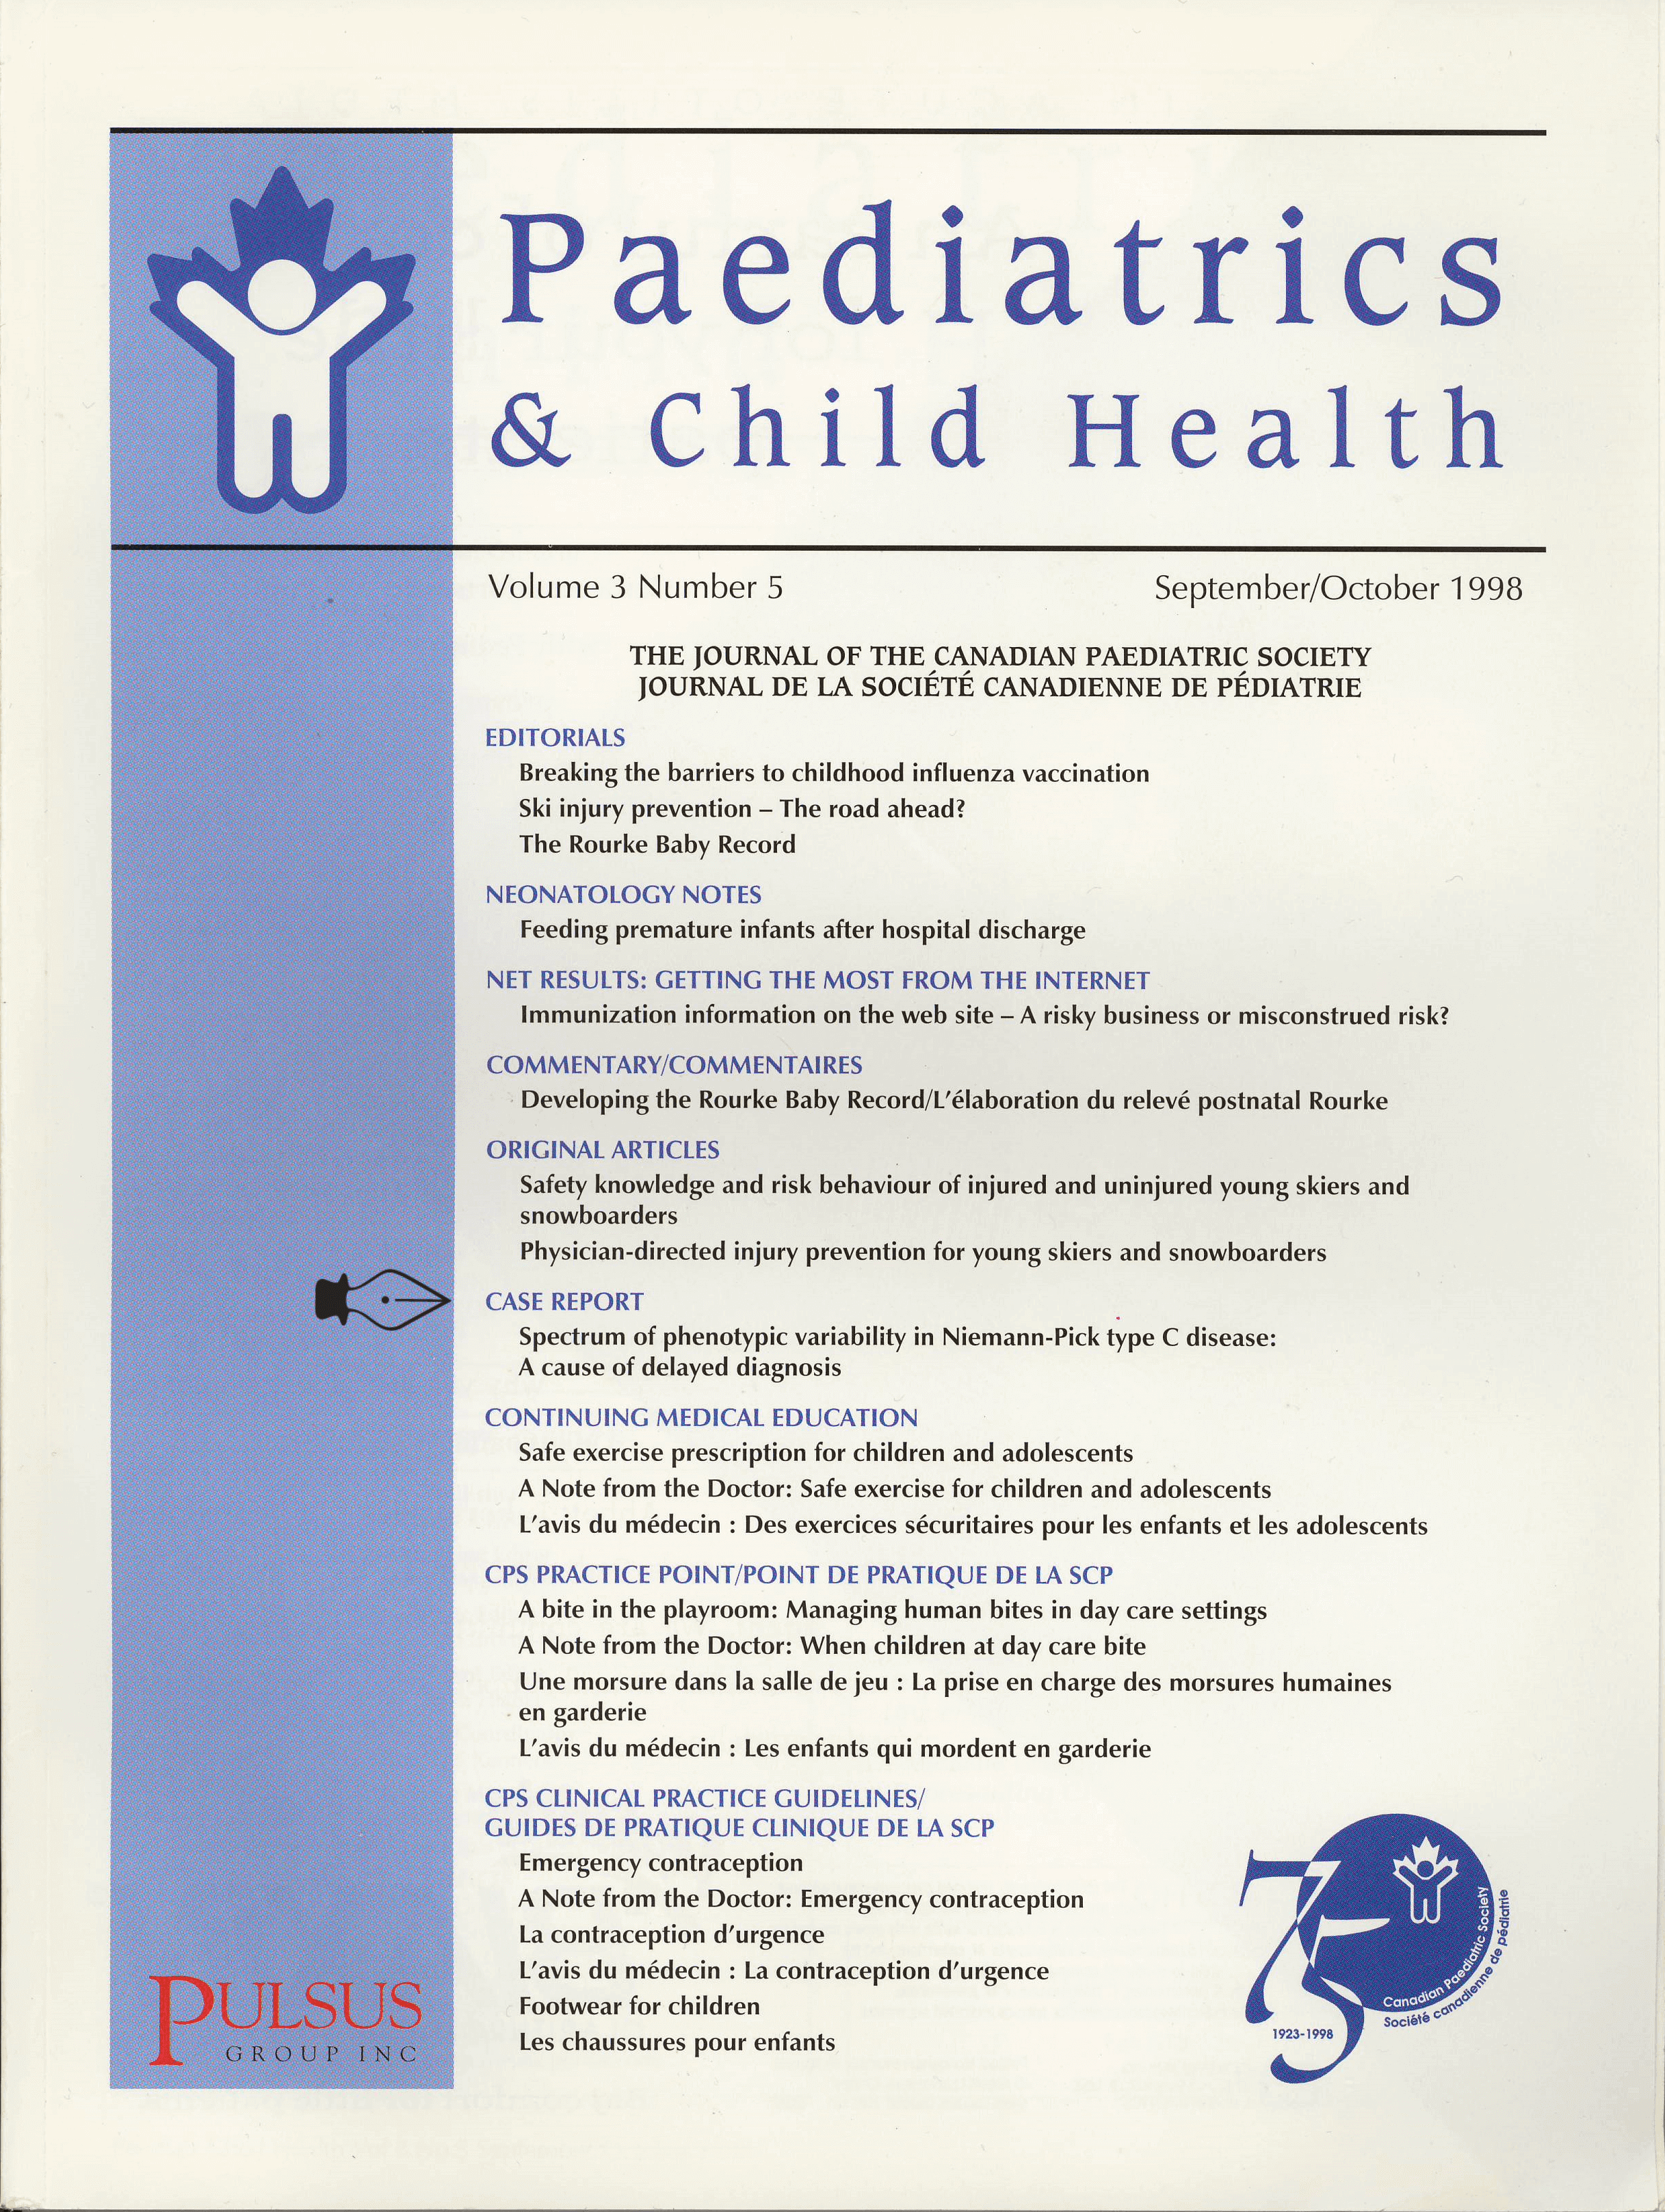 1998_Paed_Child_Health_pg_329.png